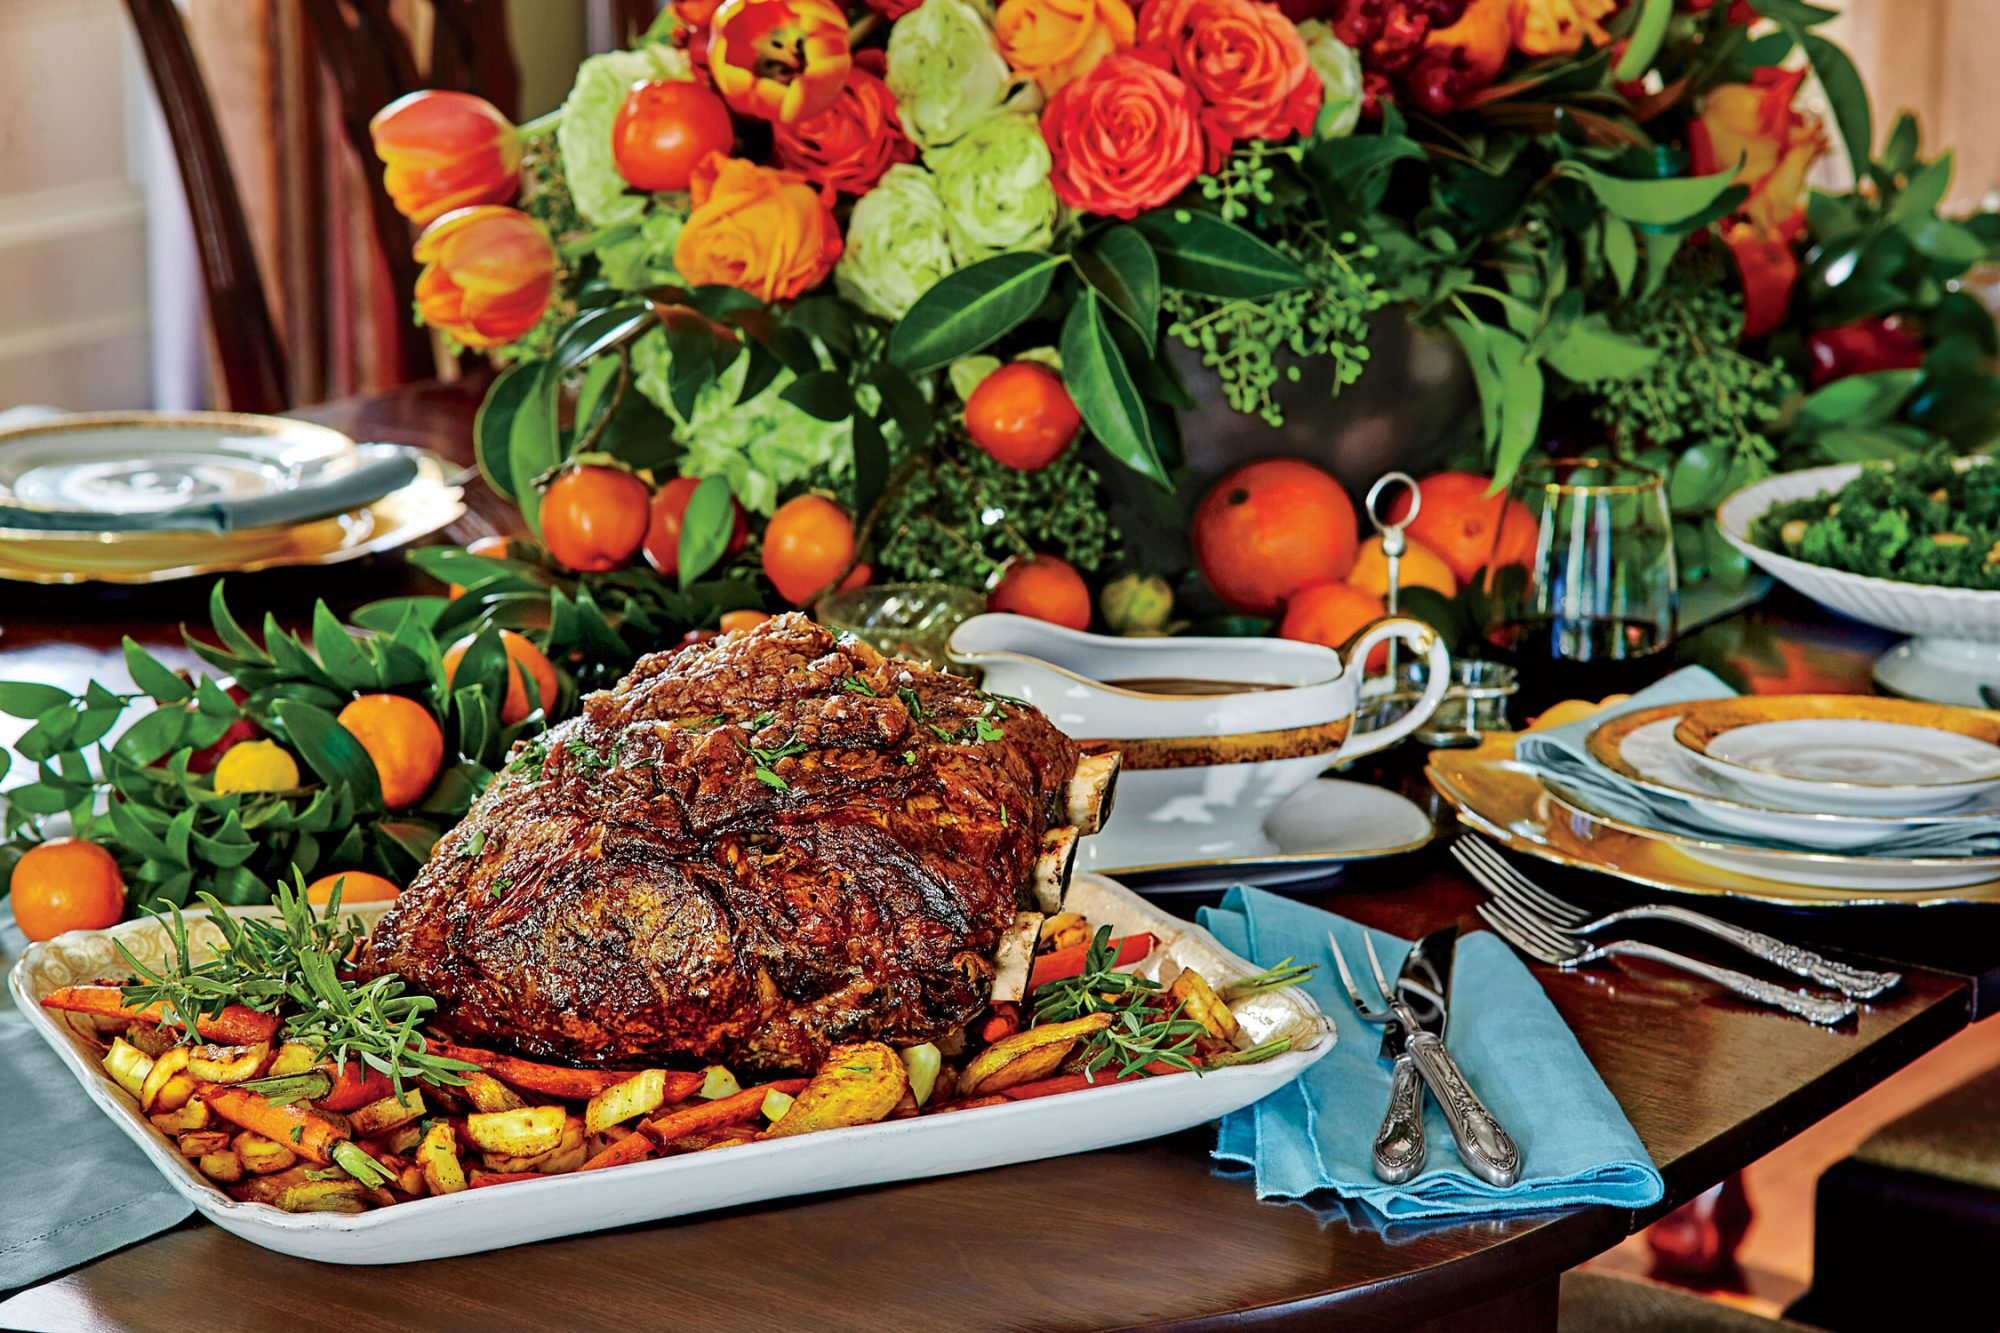 Peppercorn-Crusted Standing Rib Roast with Roasted Vegetables image